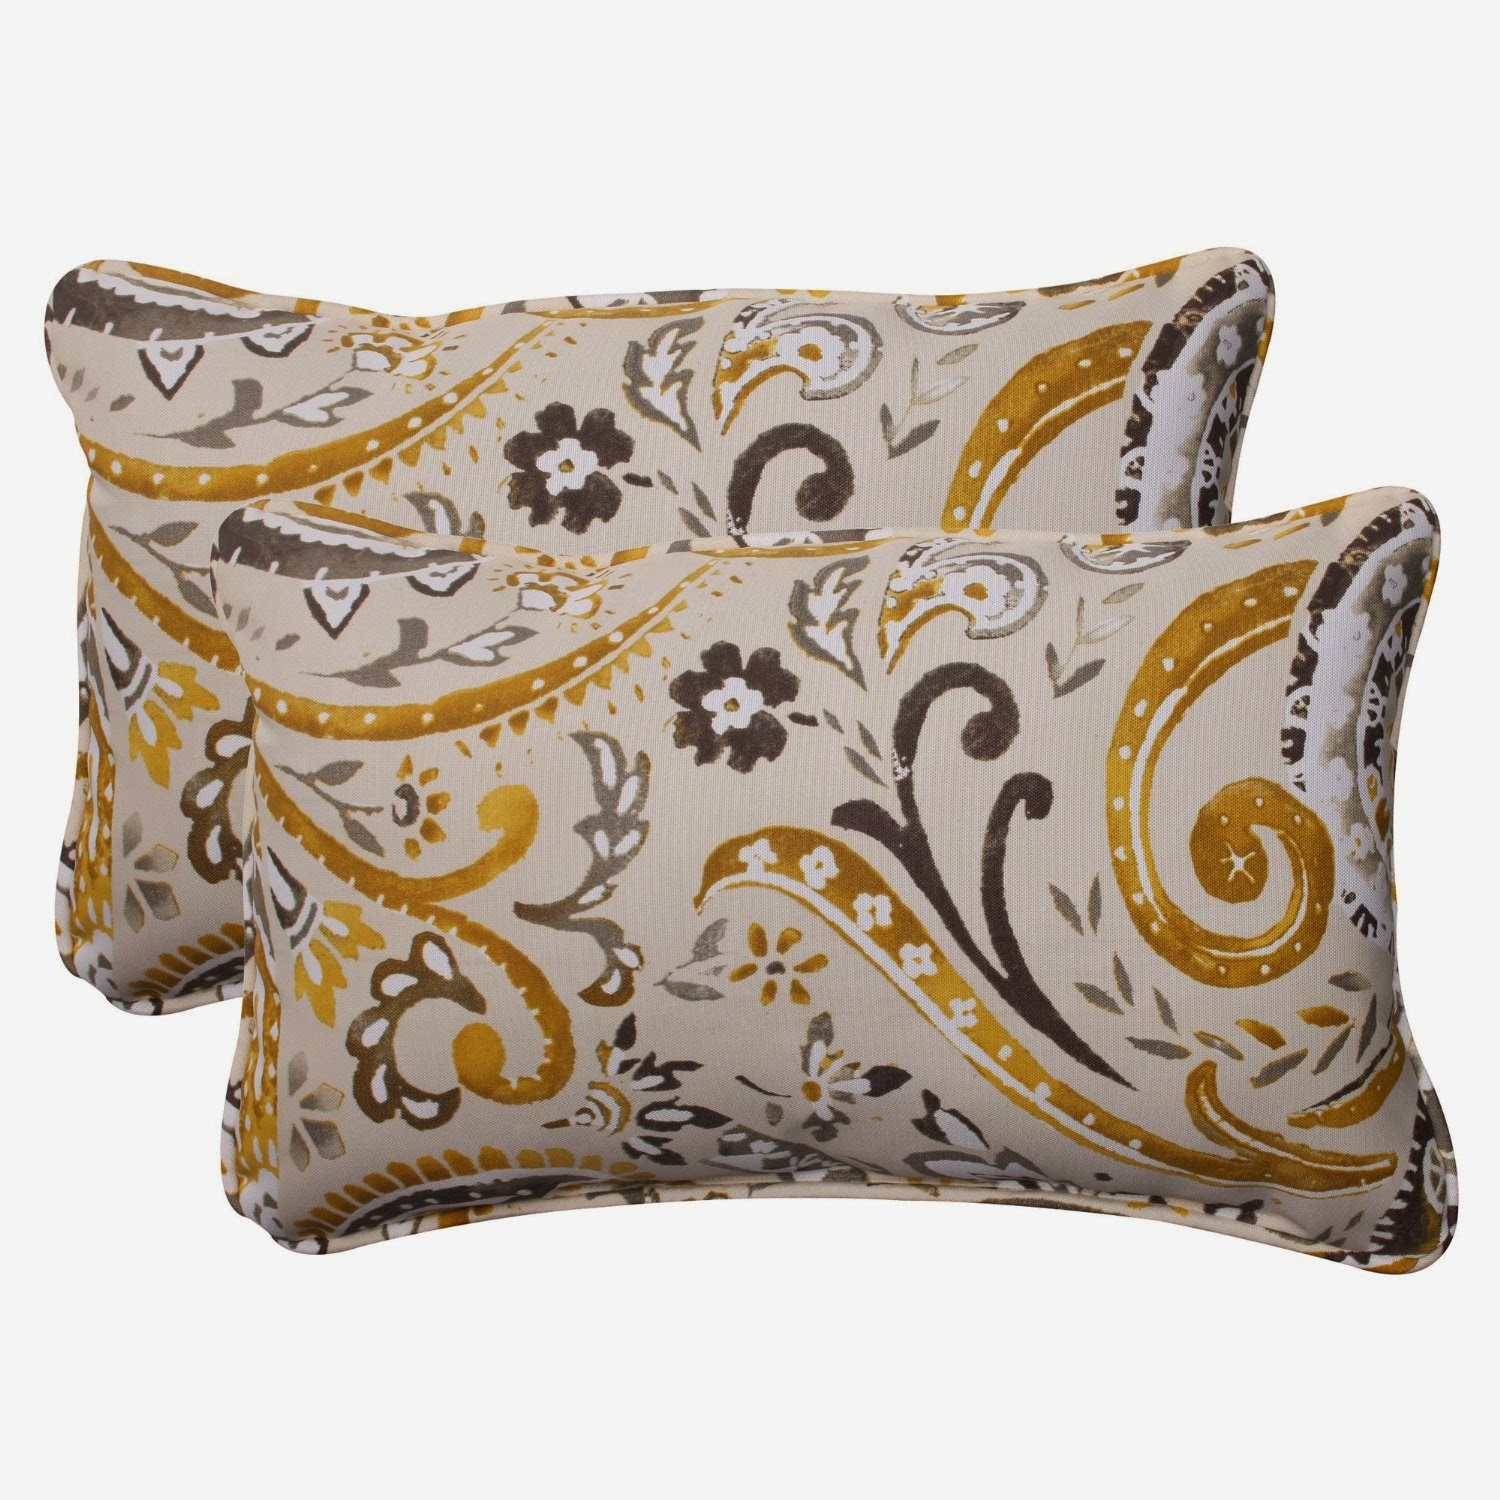 Decorative Pillows With Matching Curtains : Grey Bedding and Matching Curtains ? Ease Bedding with Style